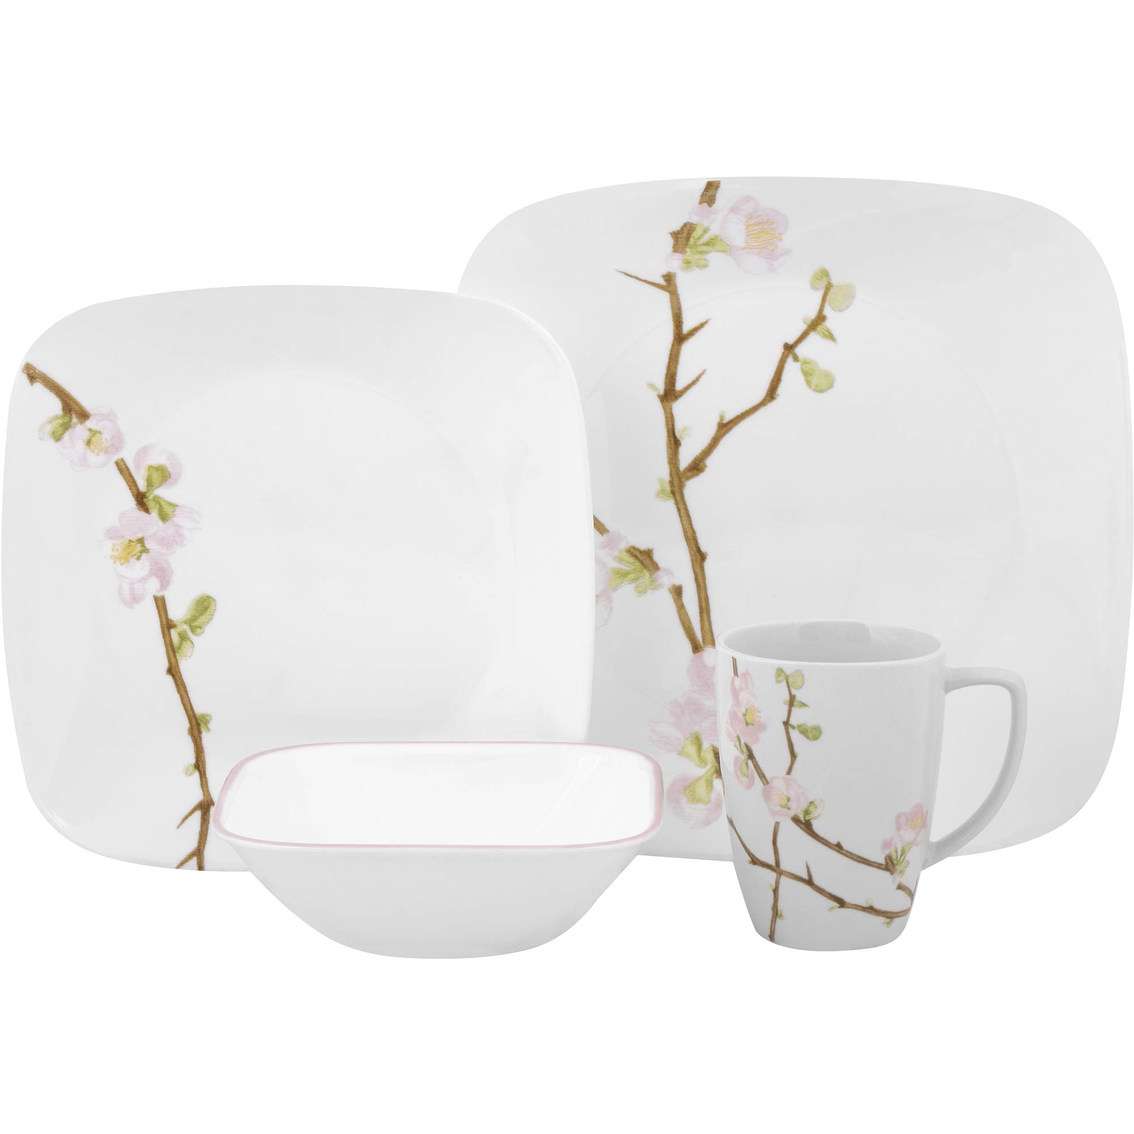 corelle cherry blossom 16 pc dinnerware set dinnerware sets home appliances shop the. Black Bedroom Furniture Sets. Home Design Ideas